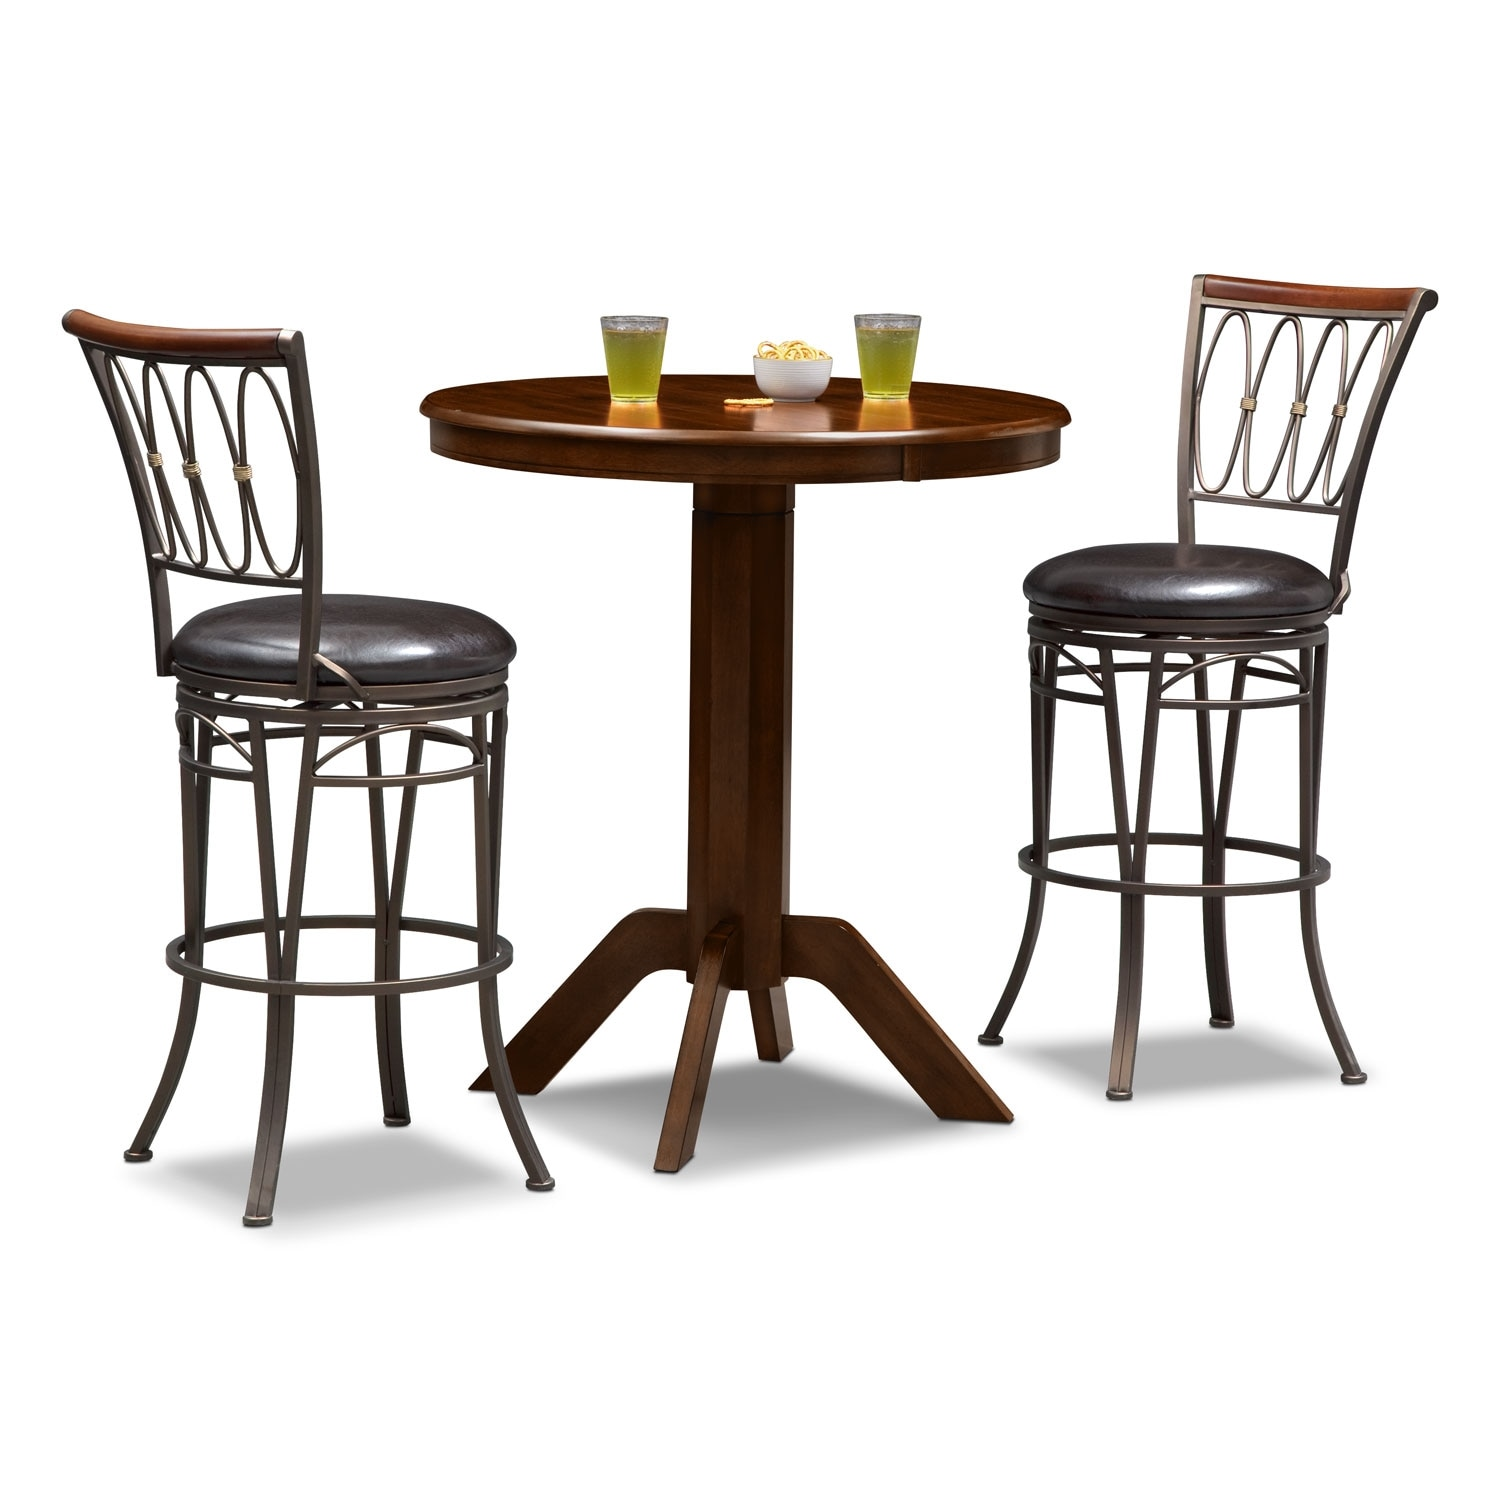 Dining Room Furniture - Concord Blake 3 Pc. Bar-Height Dinette